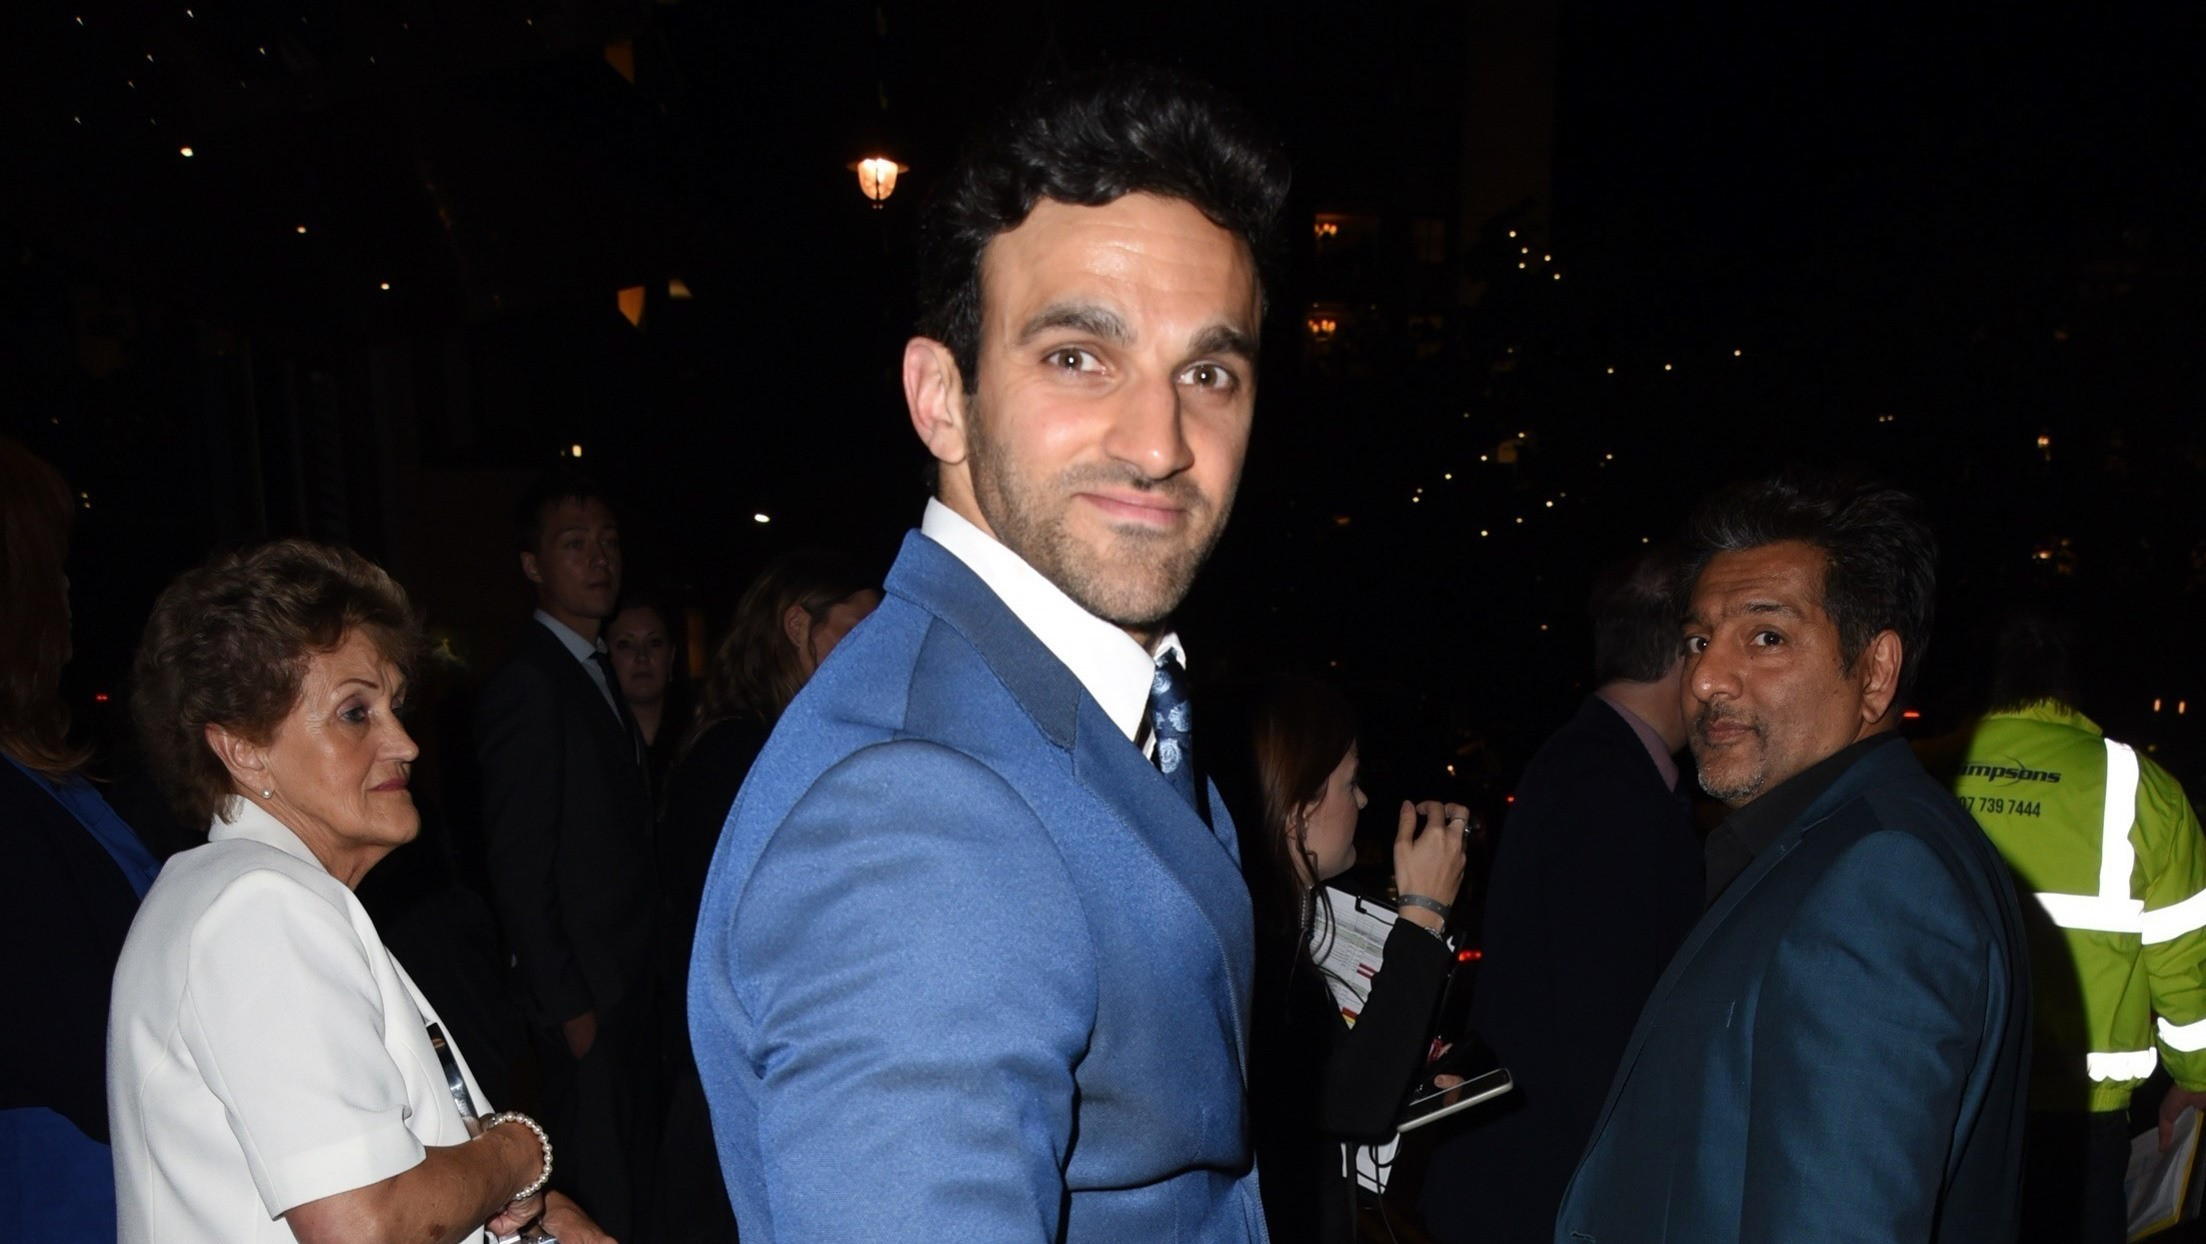 EastEnders star Davood Ghadami melts fans' hearts with emotional post about his daughter